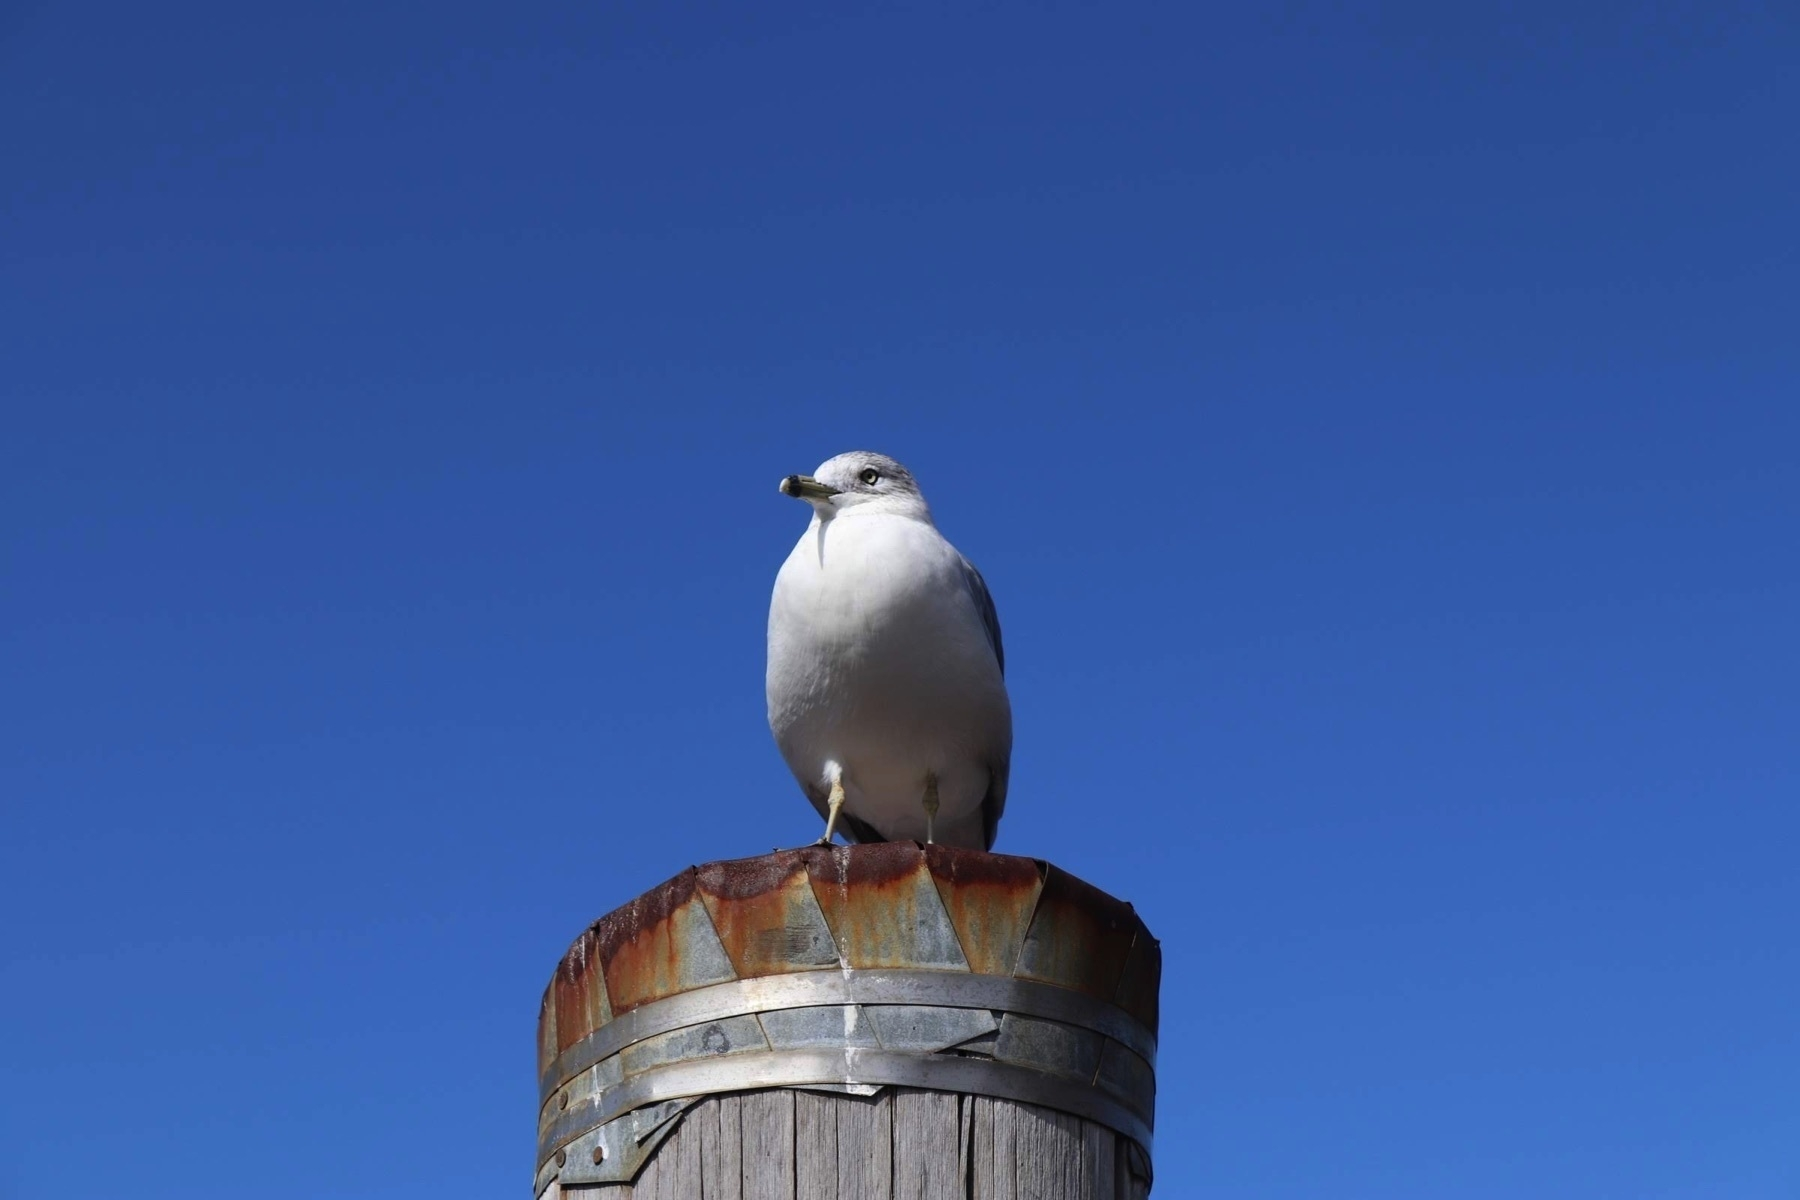 This seagull or Чайка is just sitting on top of a pillar. Pic taken October 2019